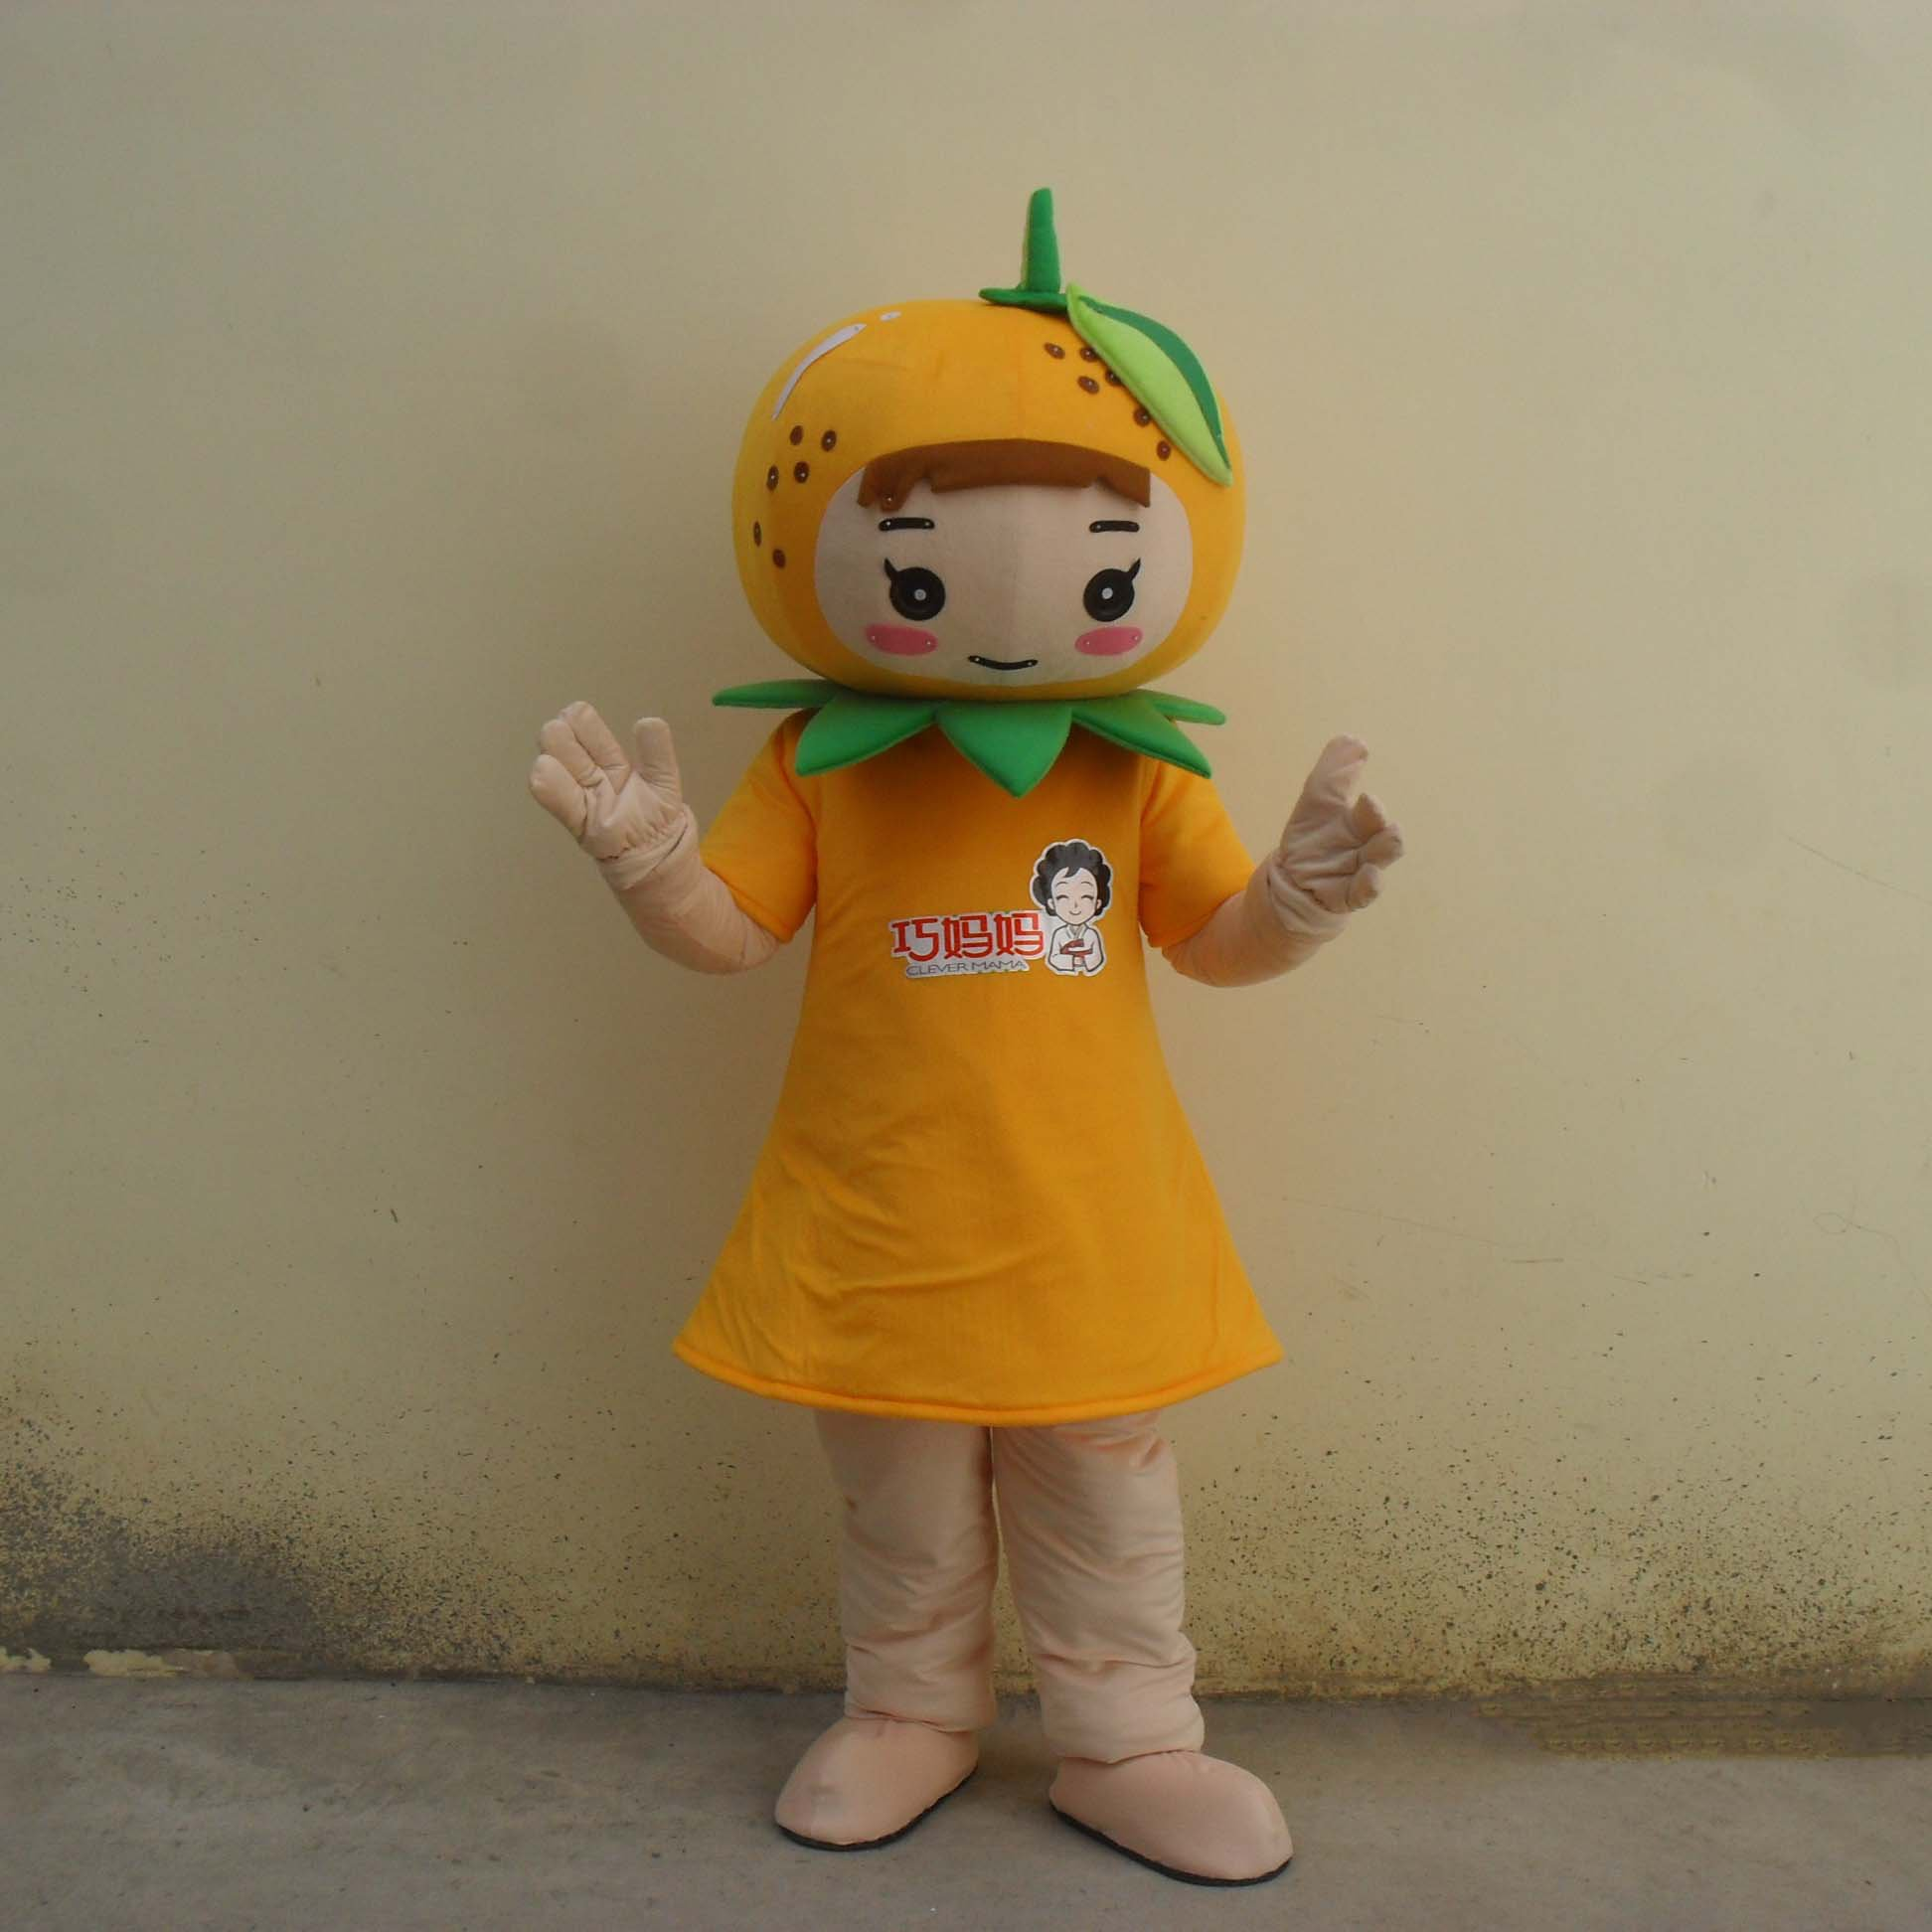 Orange Cartoon Doll Clothing Cartoon Show Props Walking Dolls Orange Oranges Advertising Mascot Costume